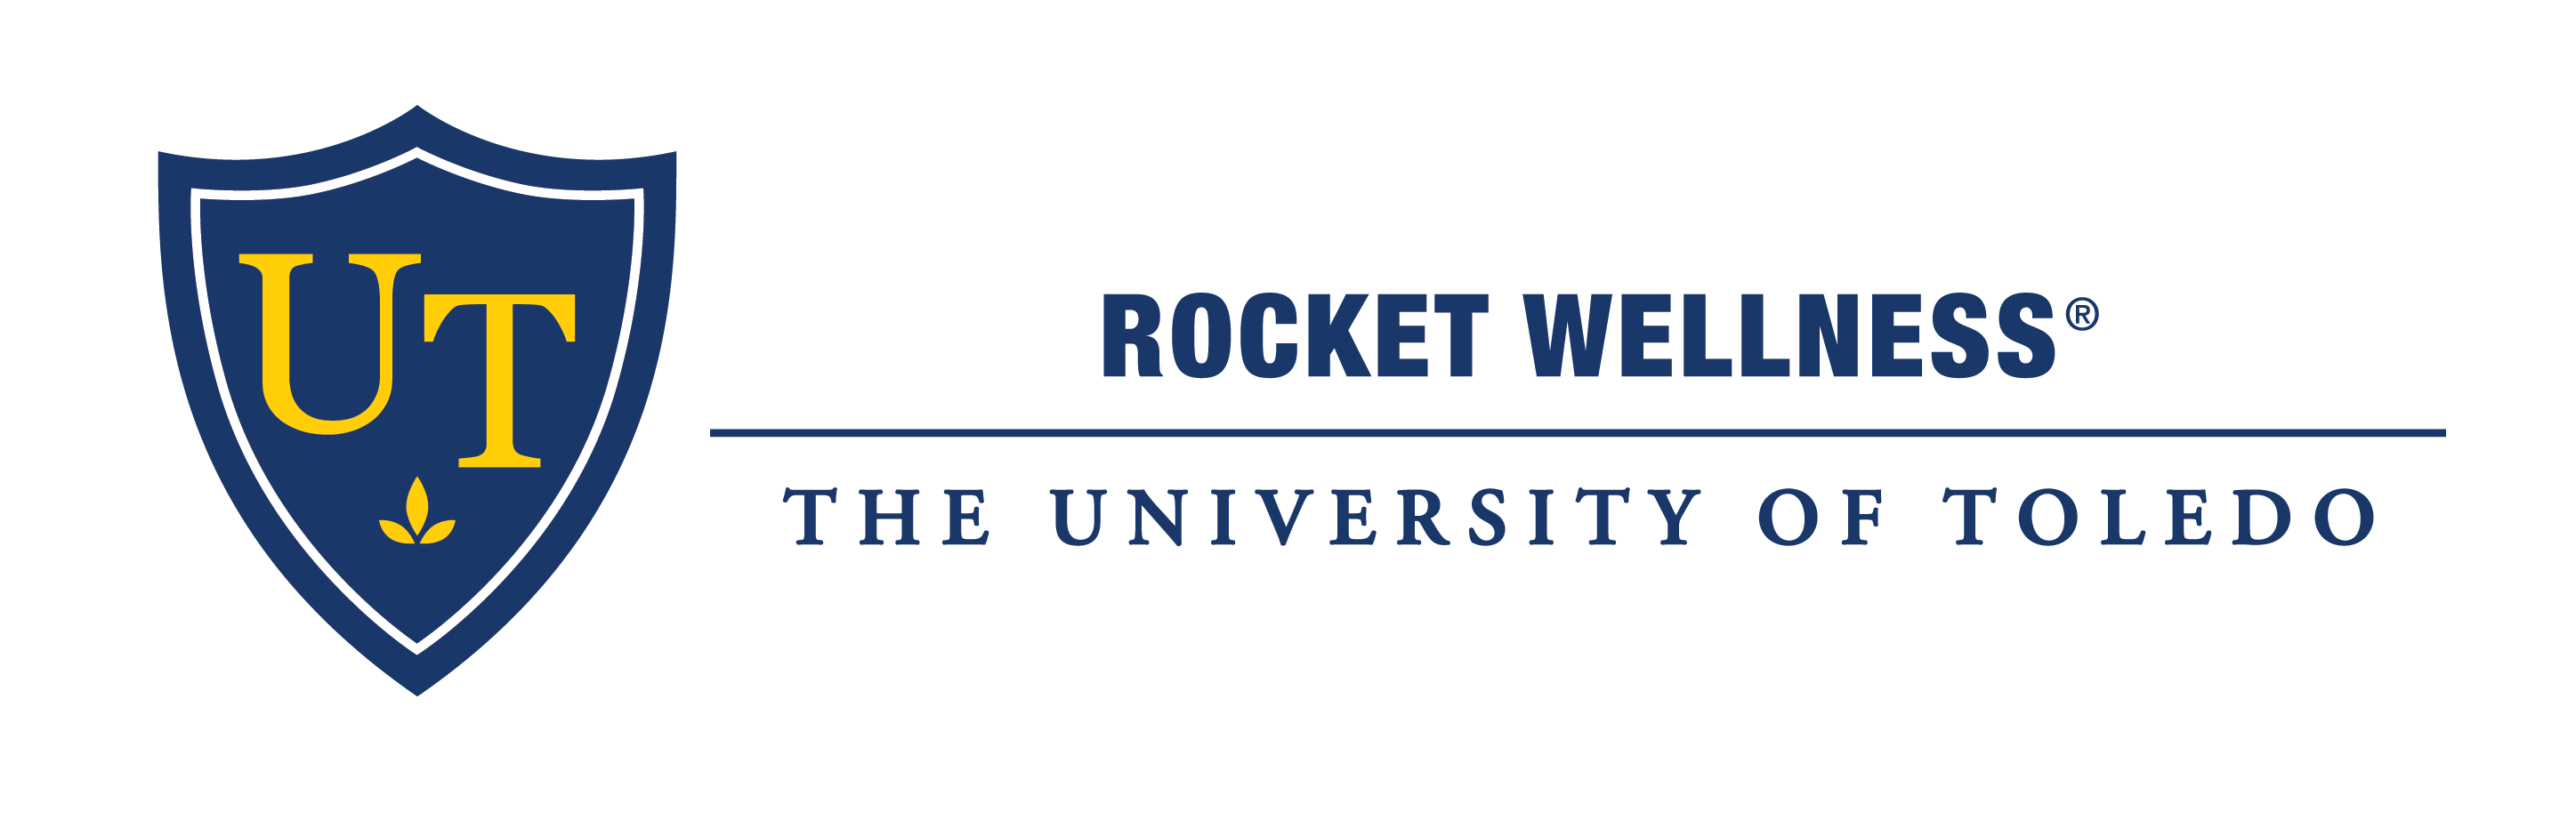 University of Toledo Rocket Wellness Logo